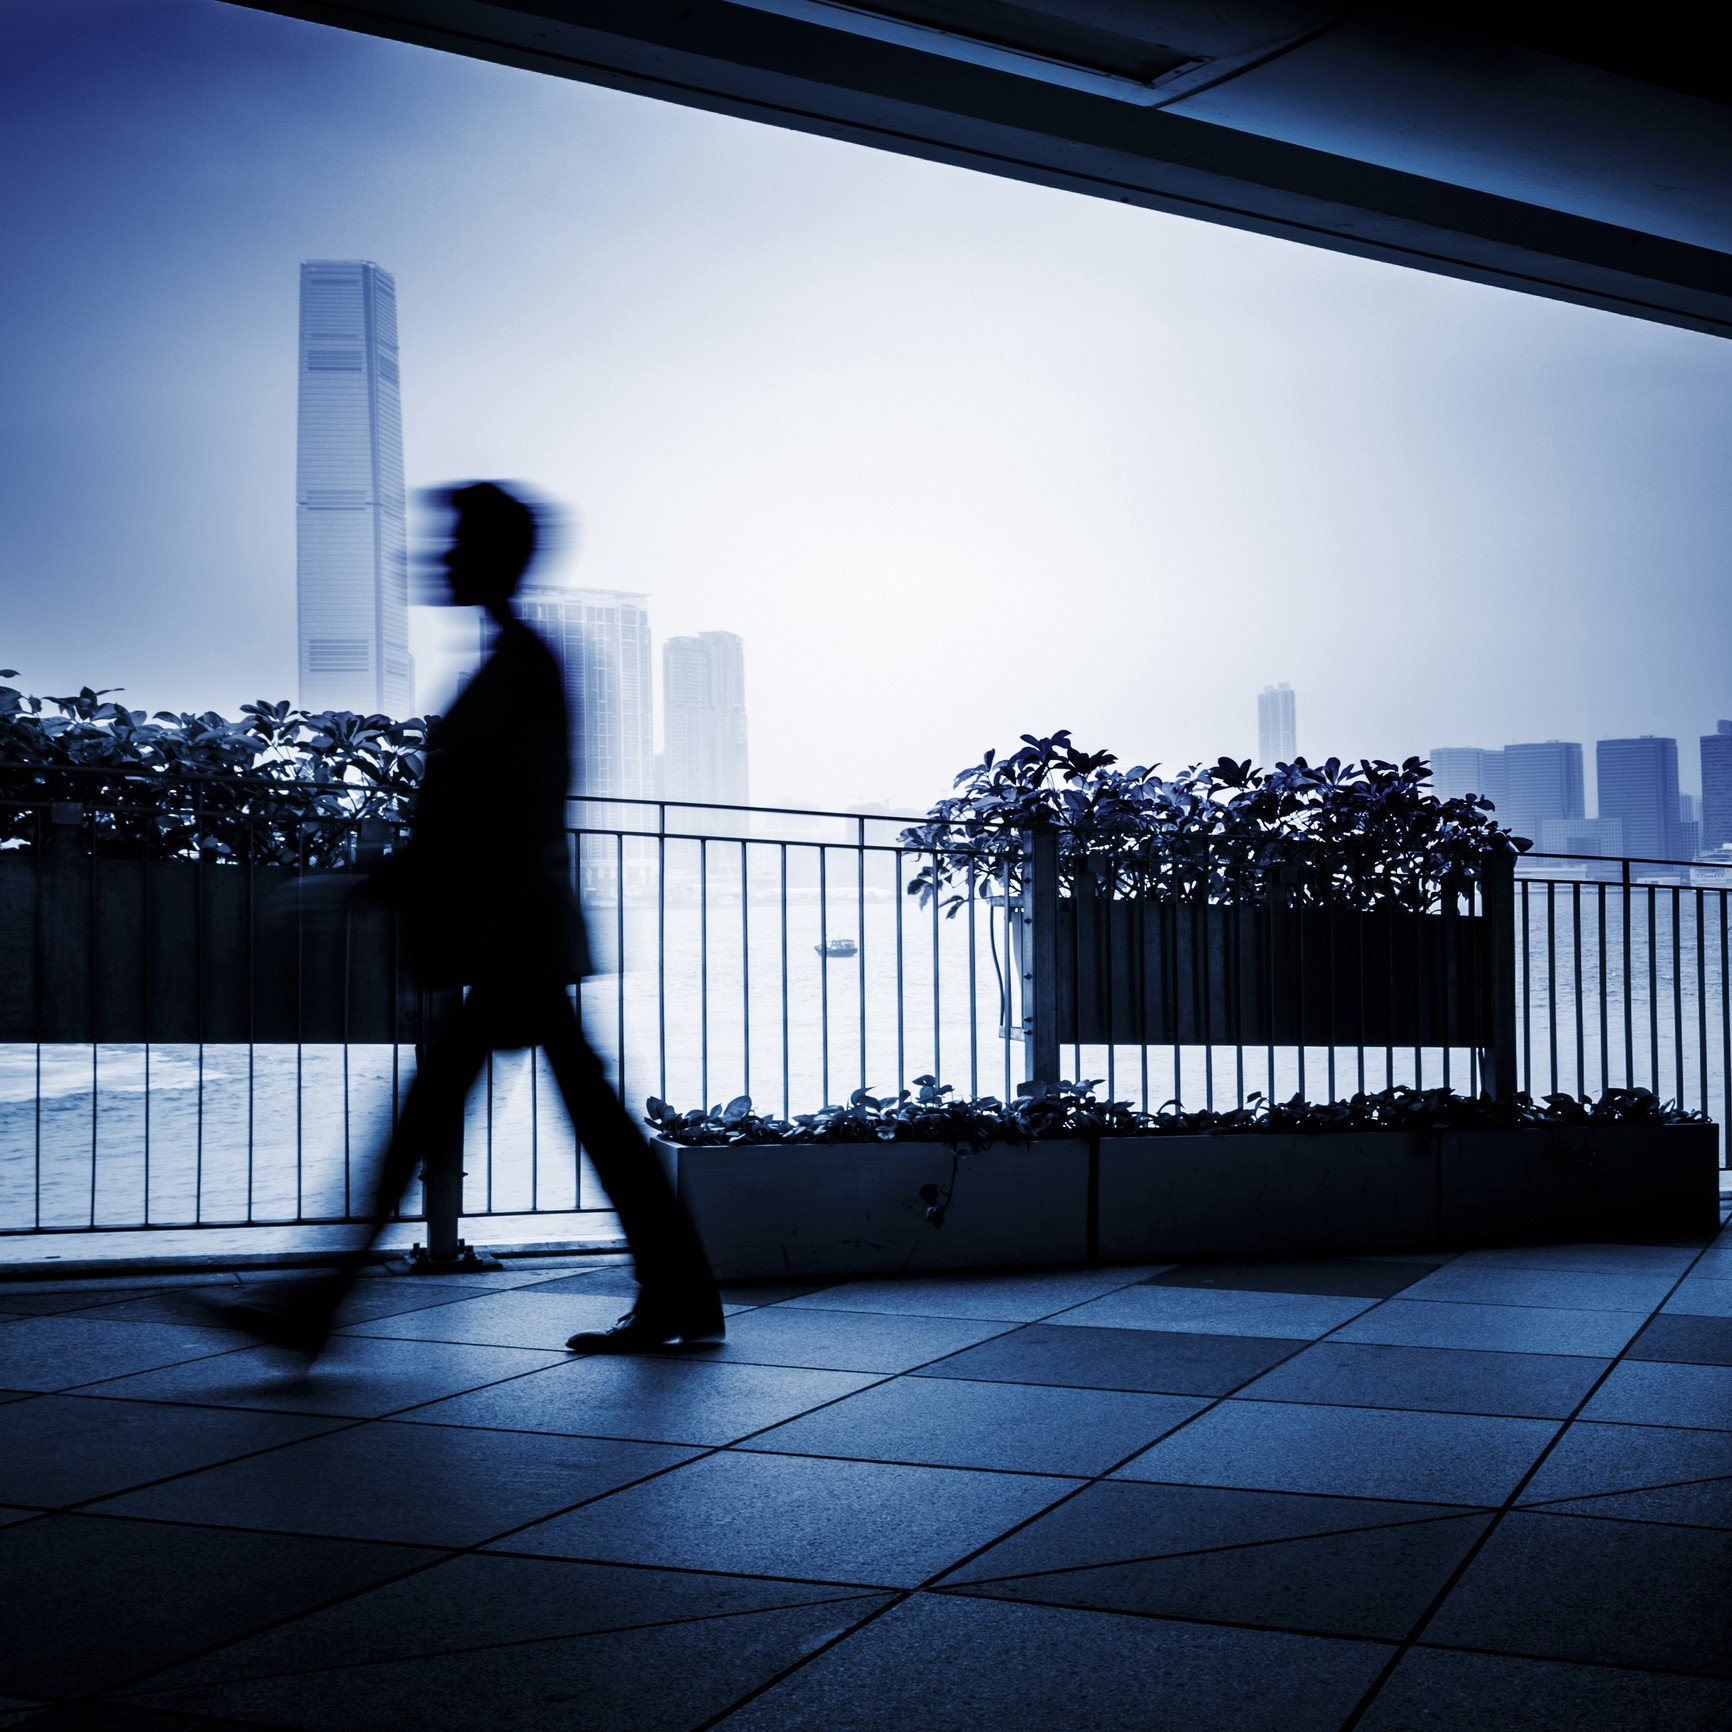 A blurry image of a man walking across an outdoor balcony space. There are tall buildings in the background.